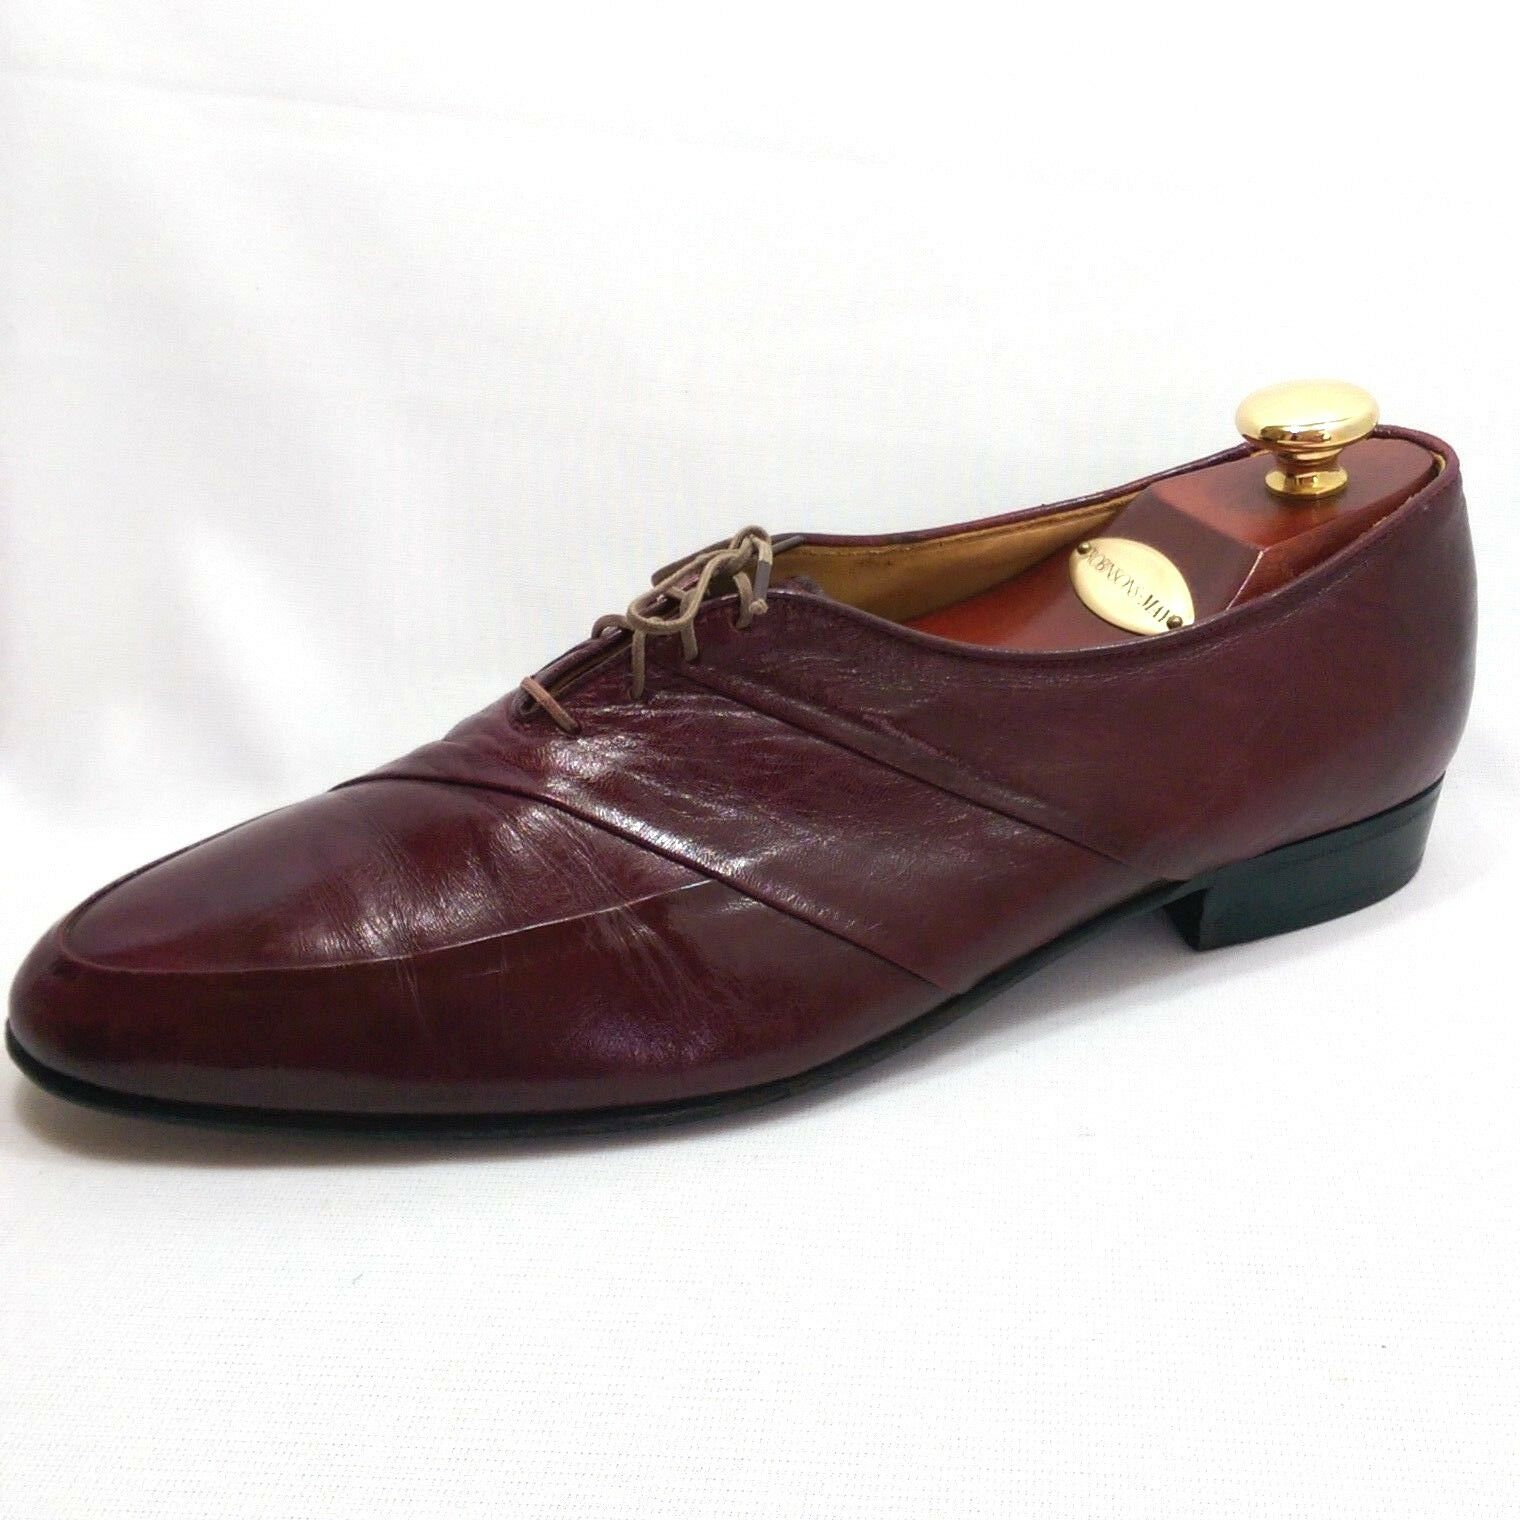 Rodolfo Valentino Collection Burgundy Leather Lace Up Oxfords Mens Größe 10.5 B